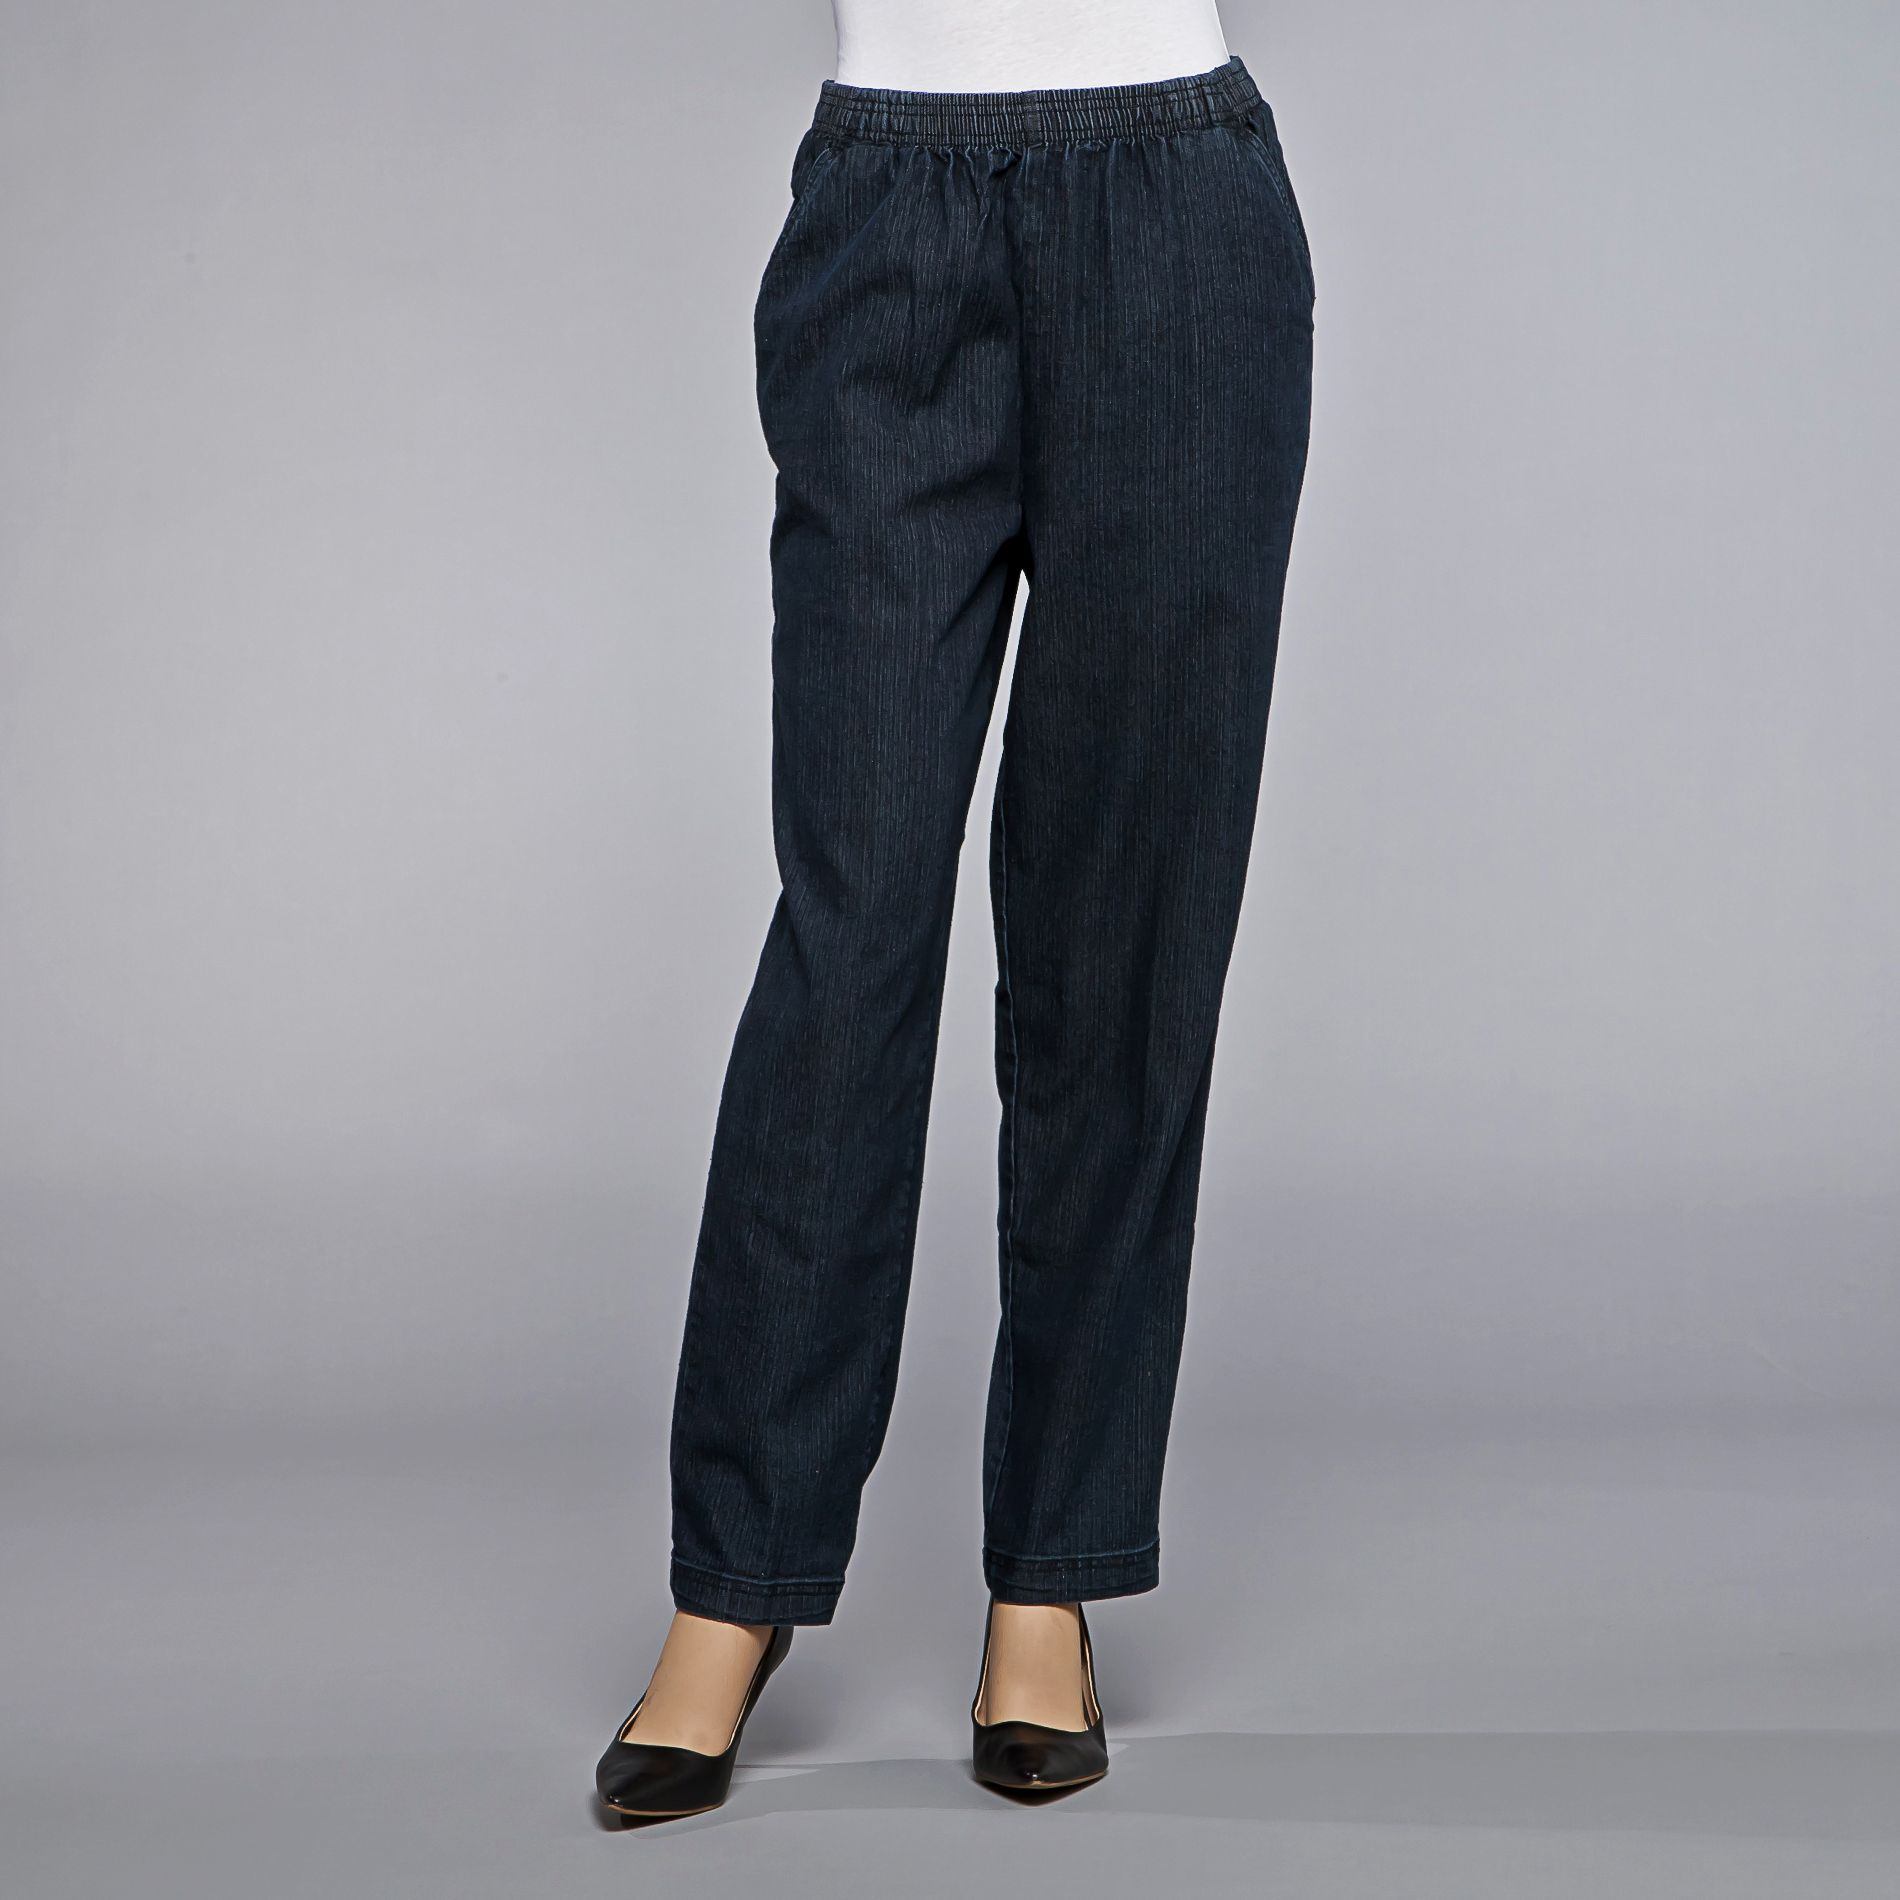 Laura Scott Women's Elastic-Waist Jeans at Sears.com